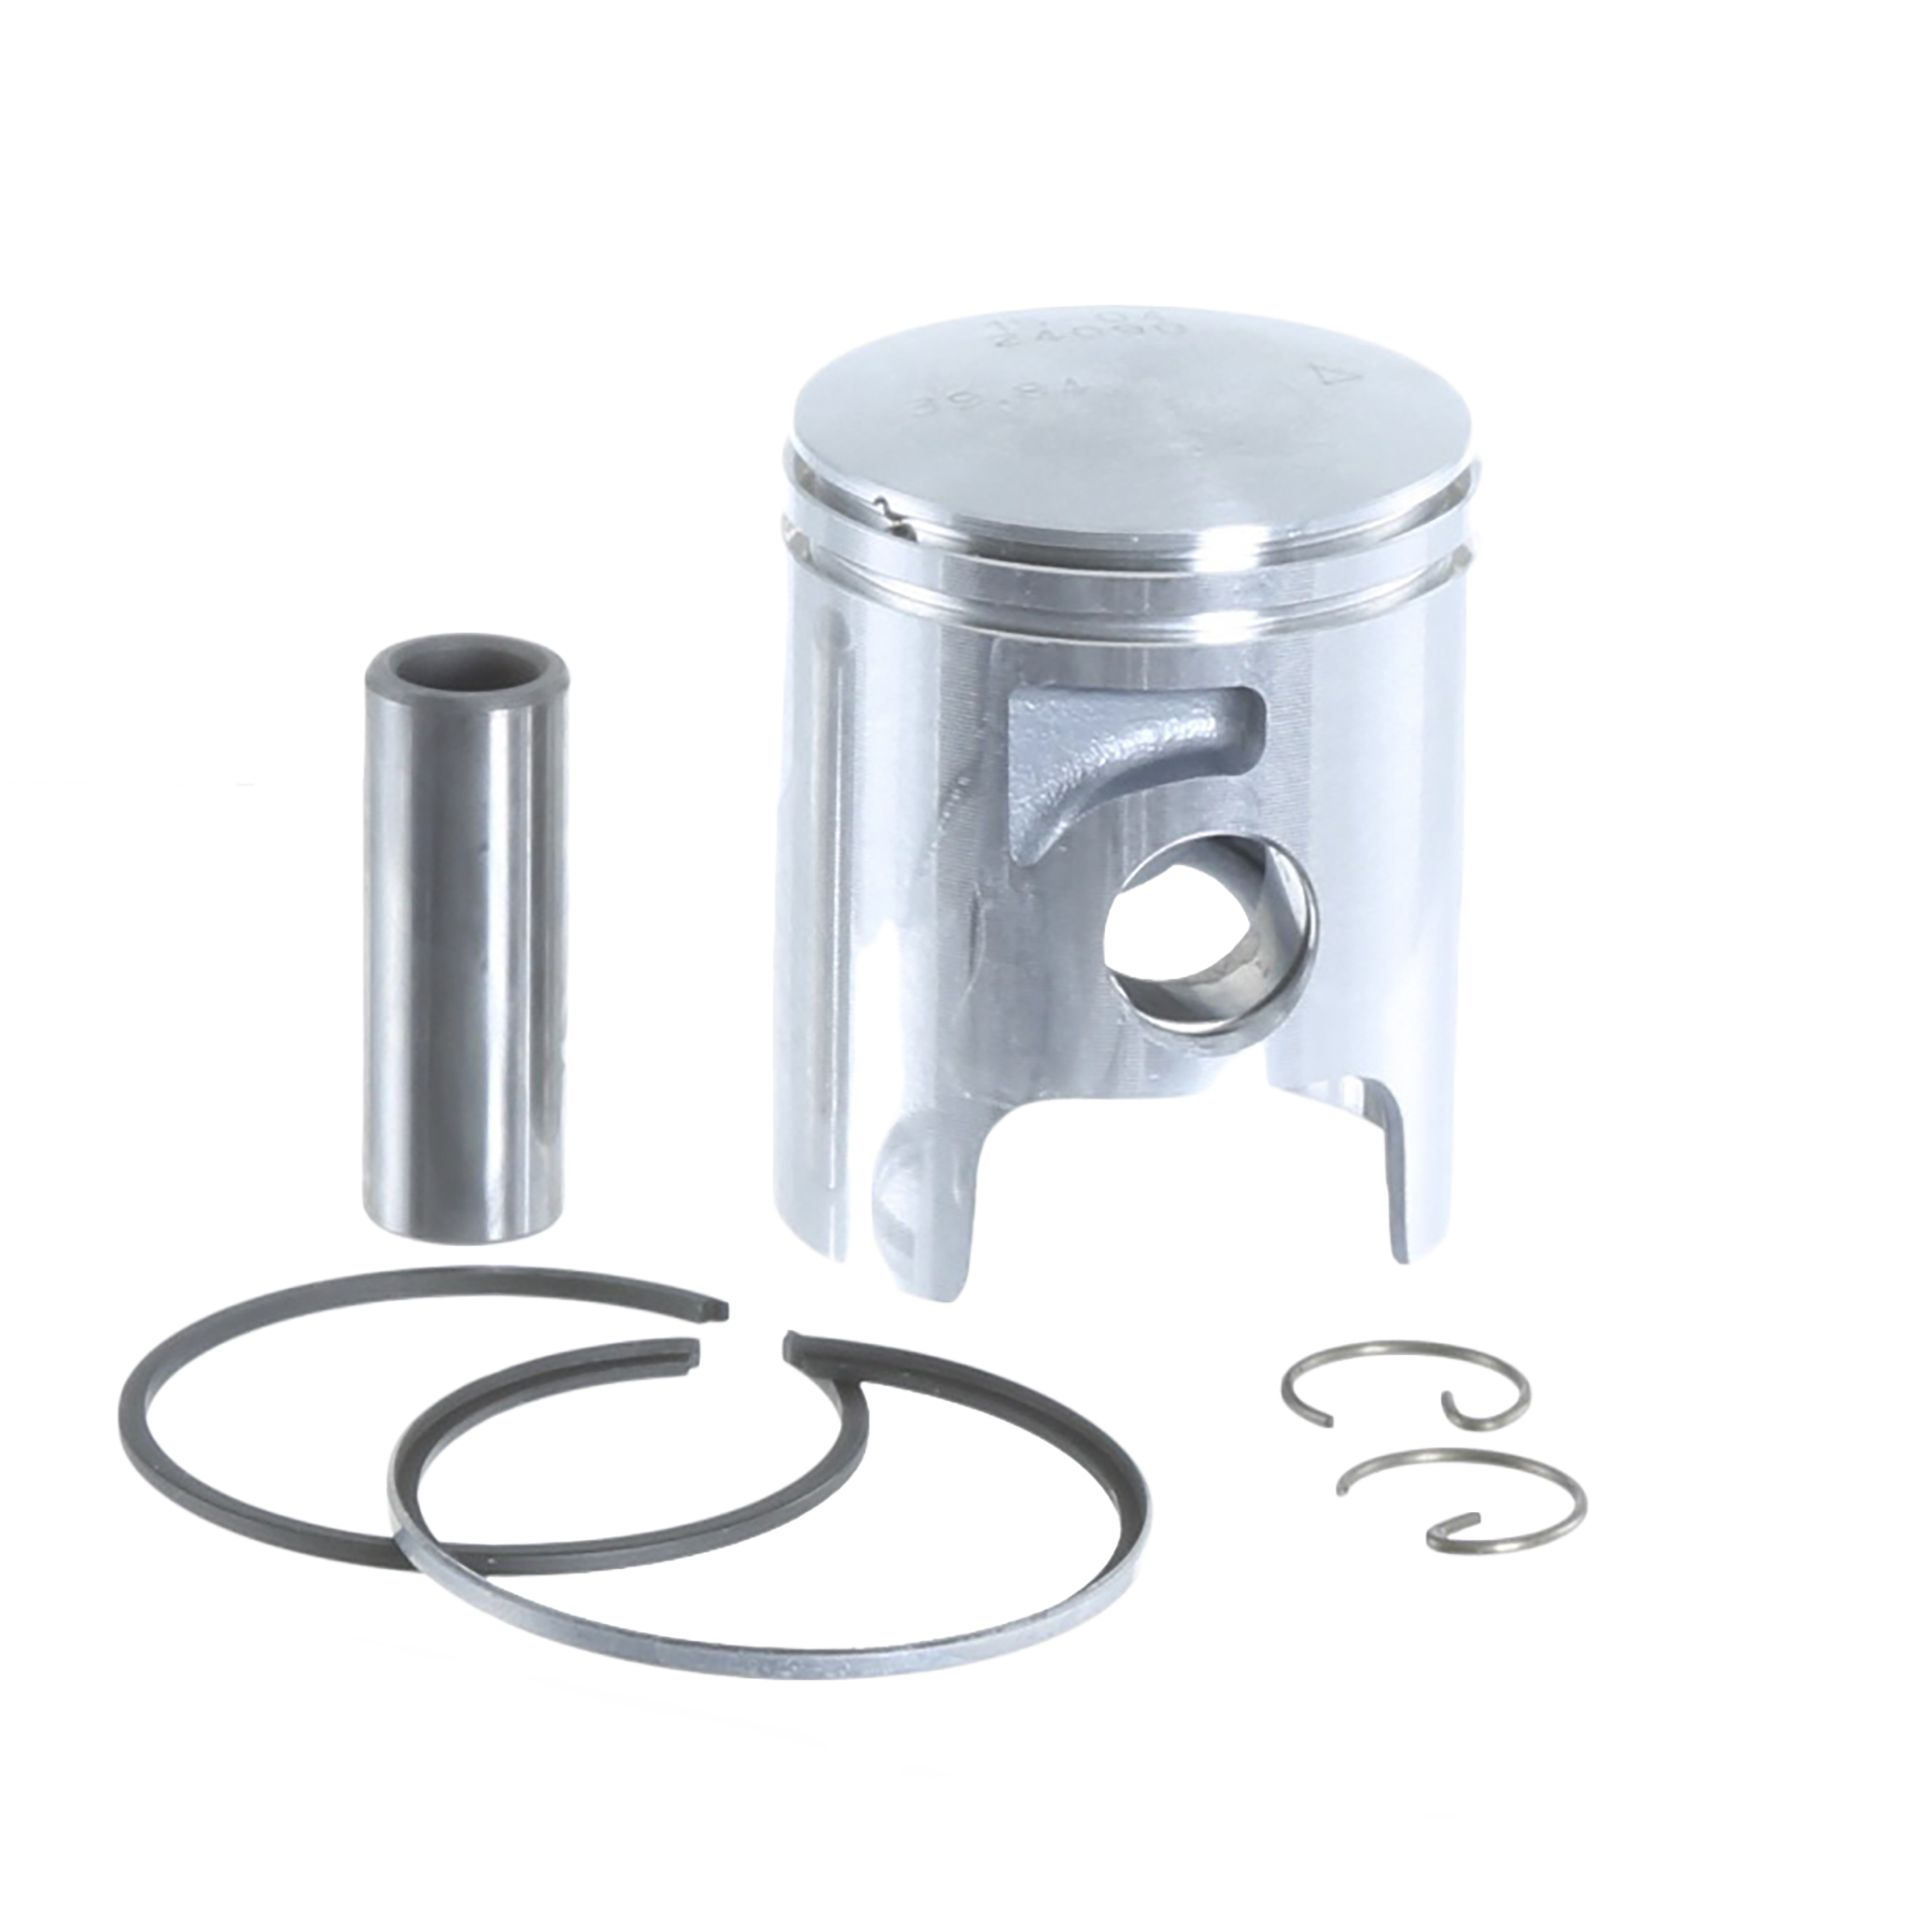 Piston de rechange dr 40mm Derbi Euro 2/Euro 3